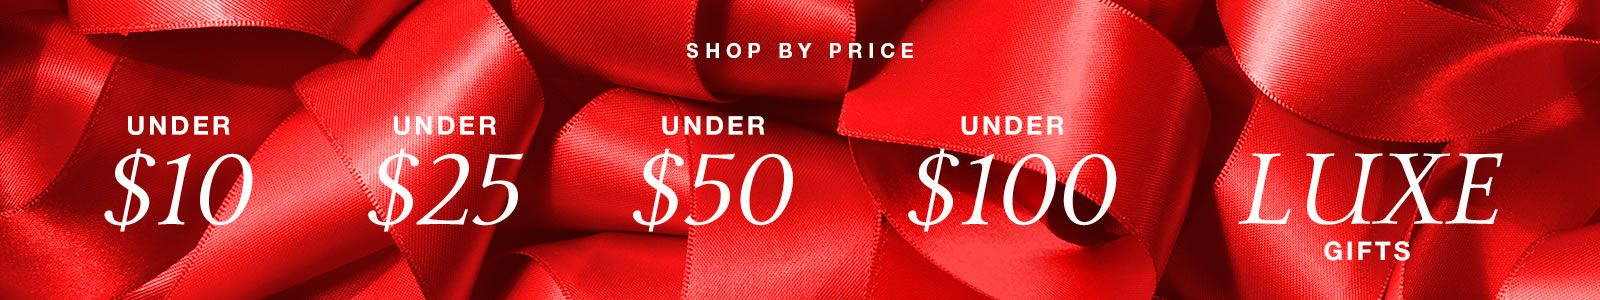 Shop by Price , Under $10 , Under $25, Under $50 , Under $100, Luxe Gifts